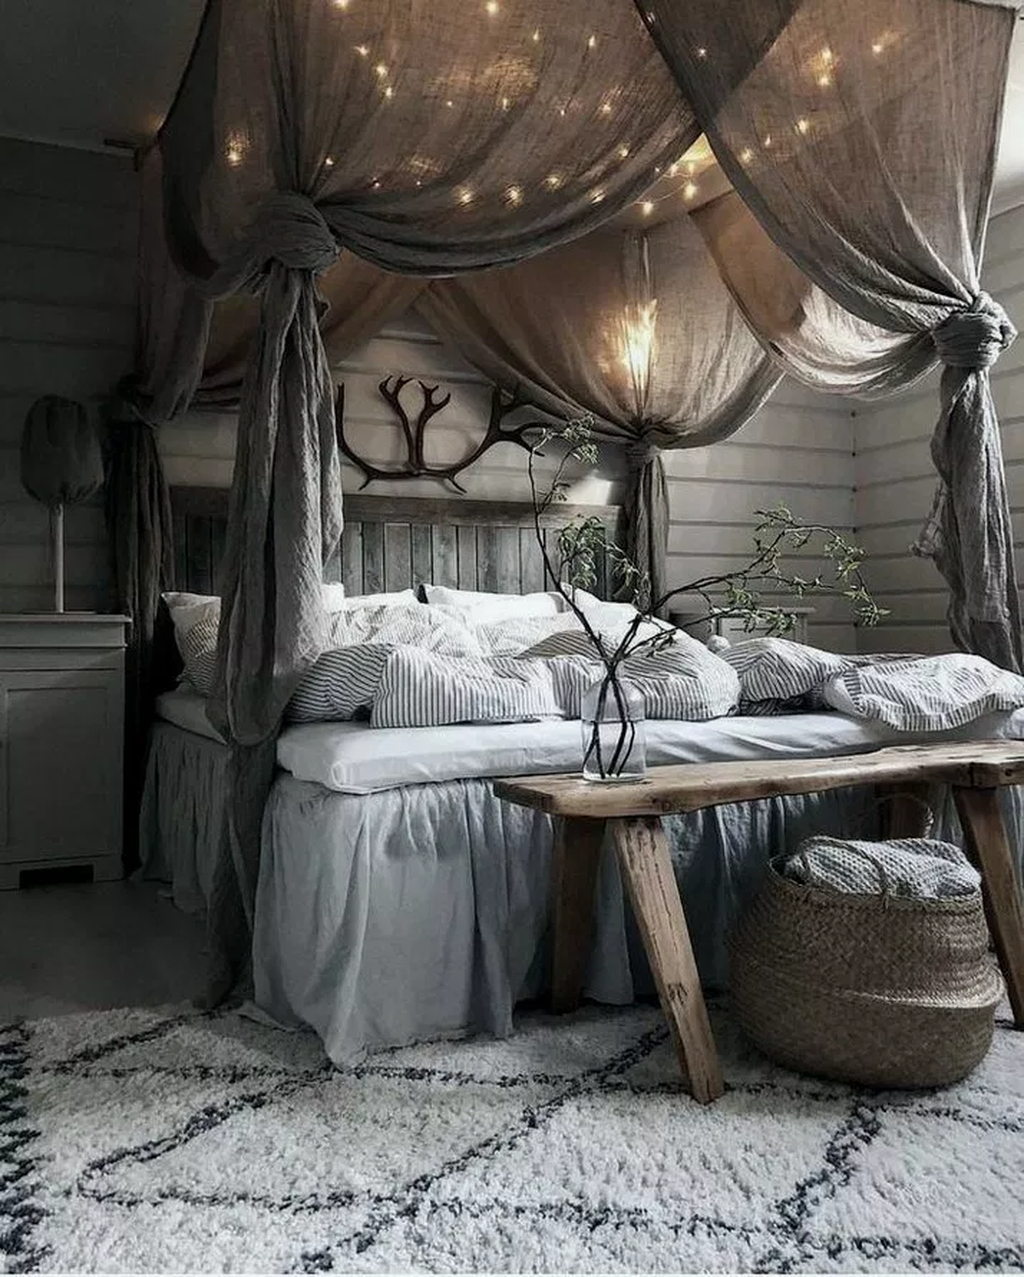 Diy Rustic Bedroom Set Plans Soon: 45 Awesome Diy Rustic And Romantic Master Bedroom Ideas